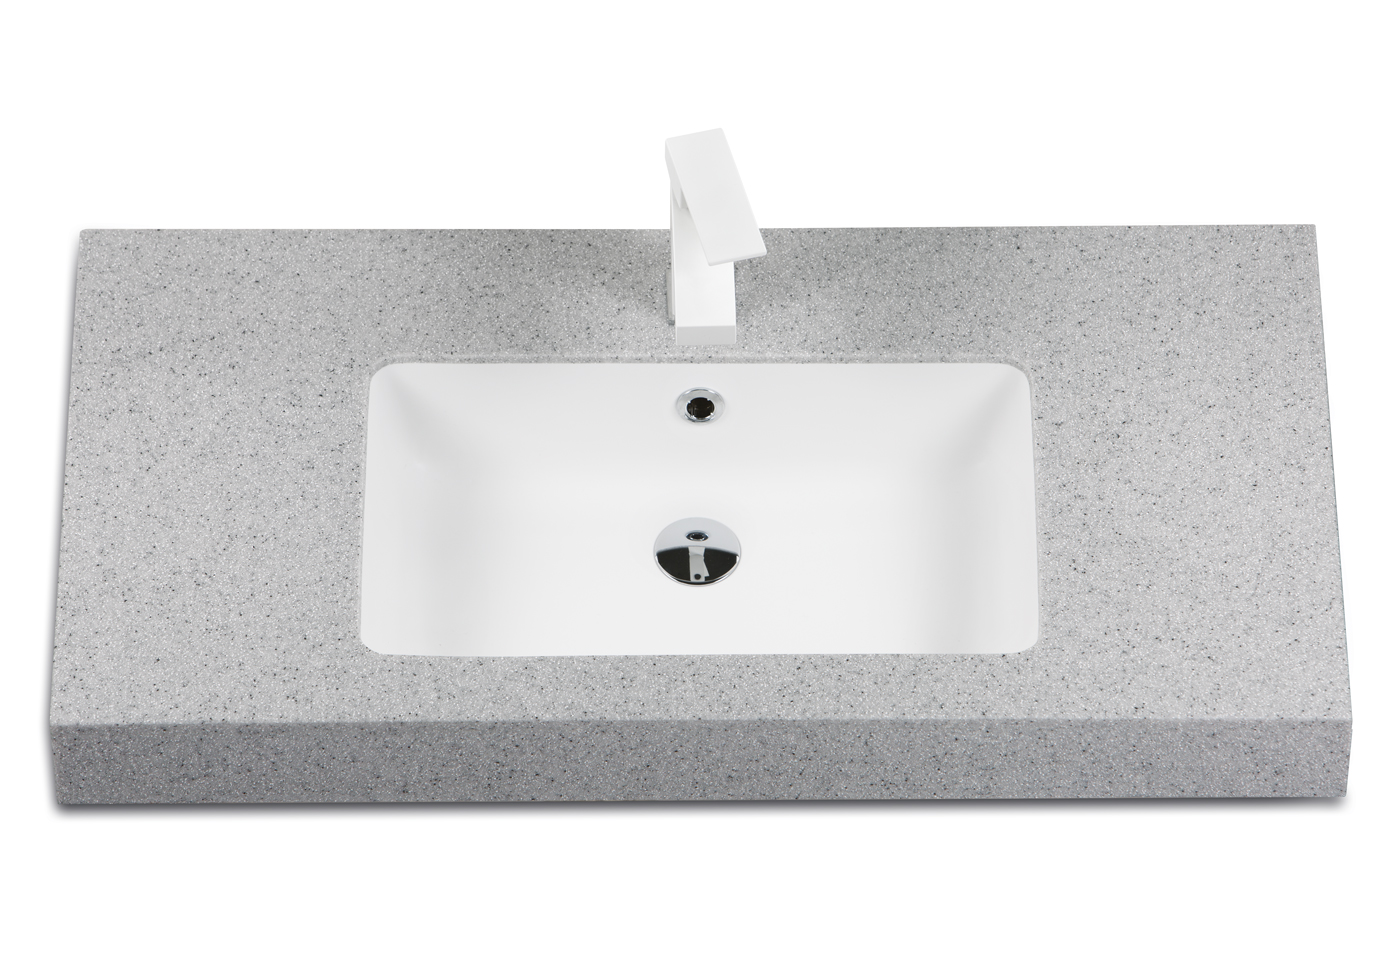 Silkstone washbasin Opus Silk in duo-colour combination - with surface painted in Matte Shadow and bowl Matte White